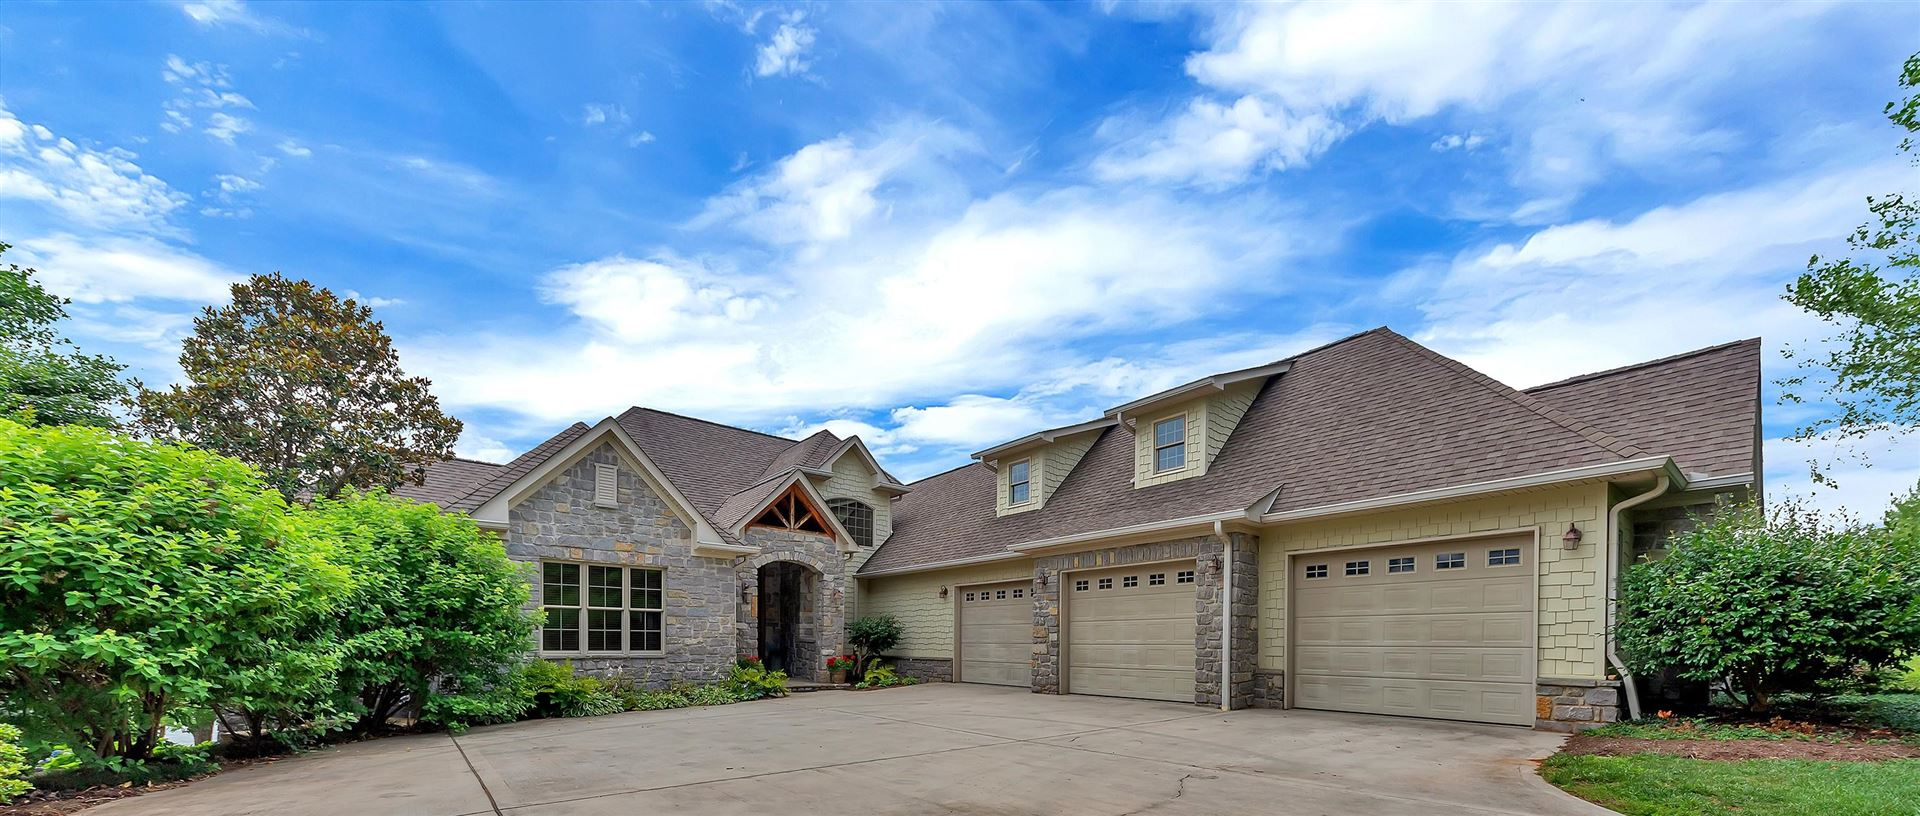 Photo for 133 Indian Shadows Drive, Maryville, TN 37801 (MLS # 1122017)